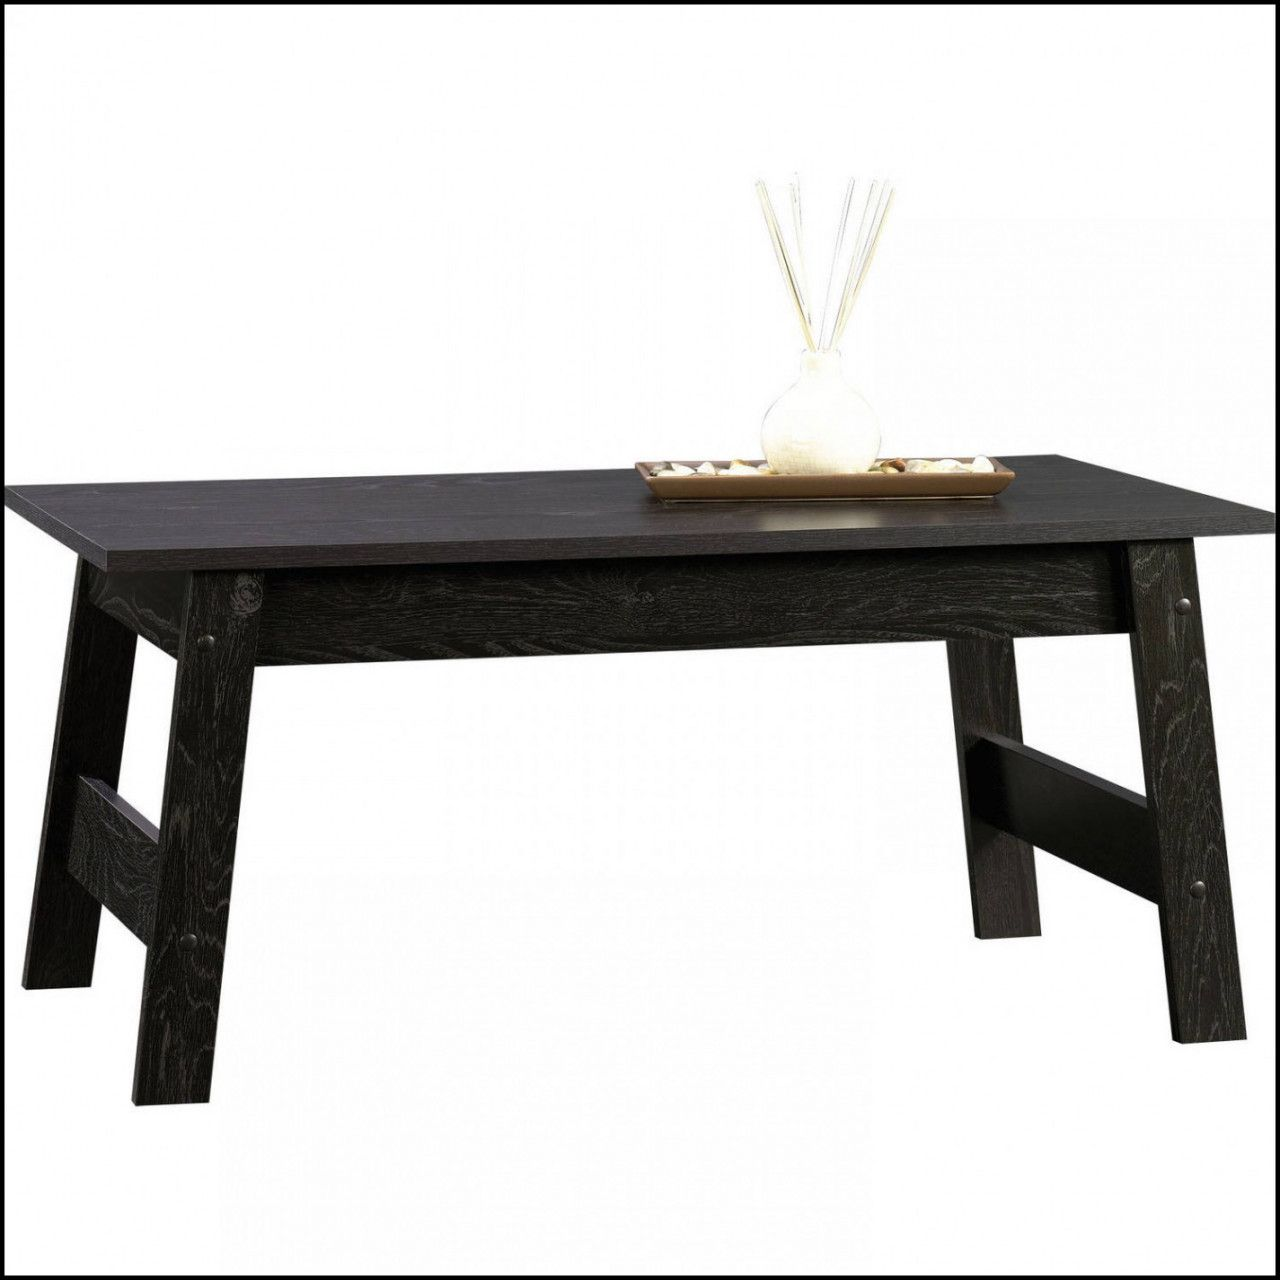 55 Luxury Walmart Coffee Table And End Tables 2018 Coffee Table Walmart Coffee Table Furniture Coffee Table Upcycle [ 1280 x 1280 Pixel ]